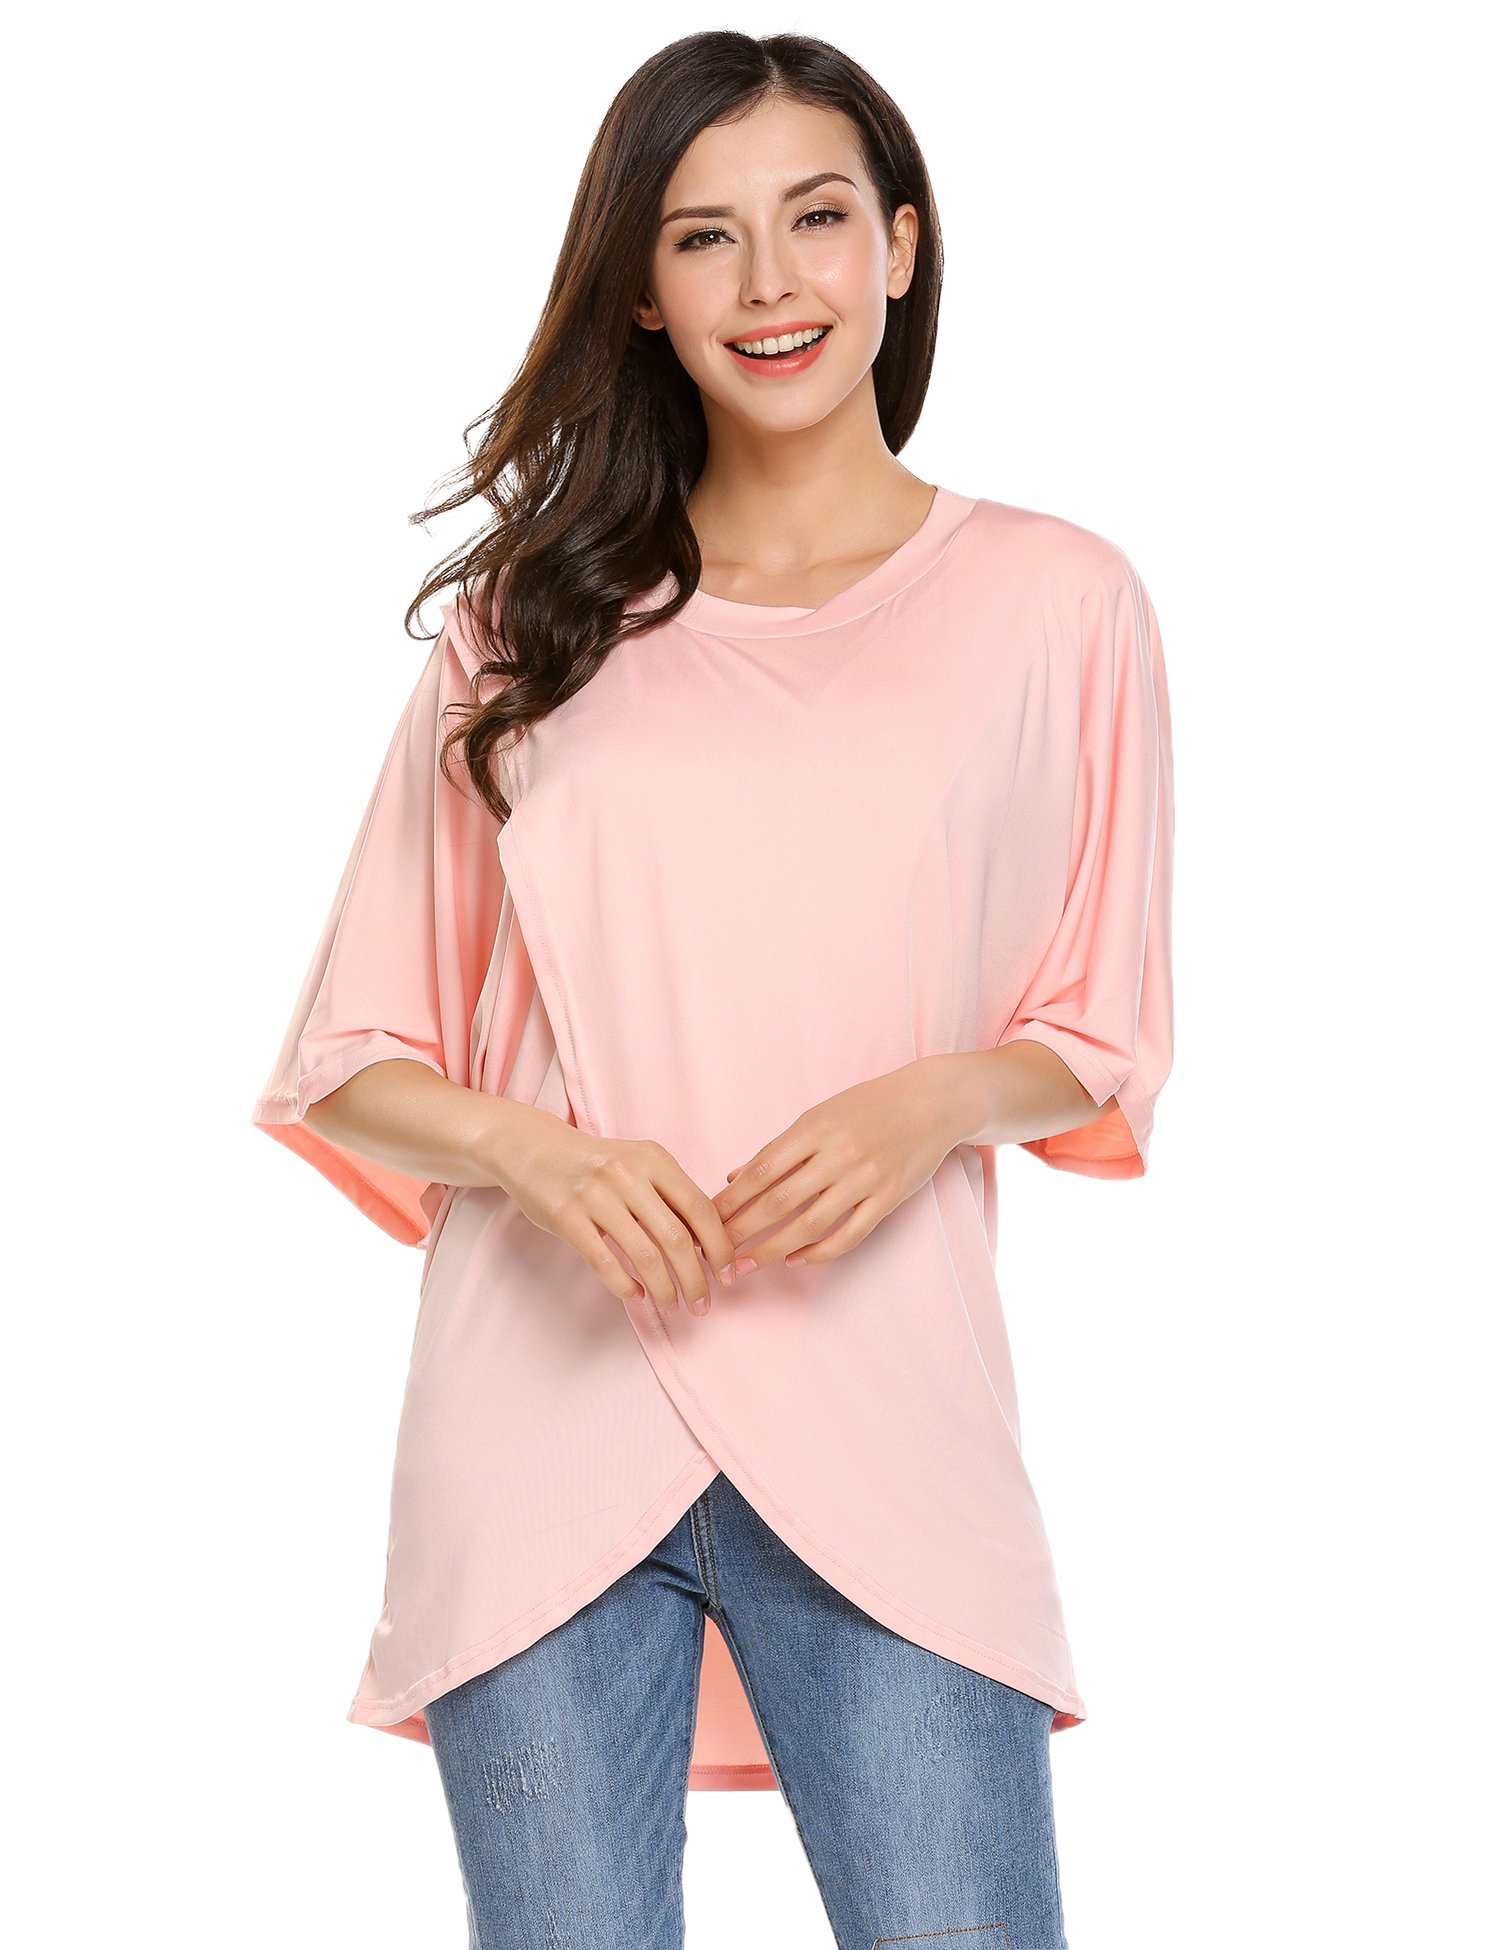 Beyove Casual Women Round Neck 1/2 Sleeve T Shirt Crossover Cotton Irregular Hem Blouse Tops(Nude,XL) by Beyove